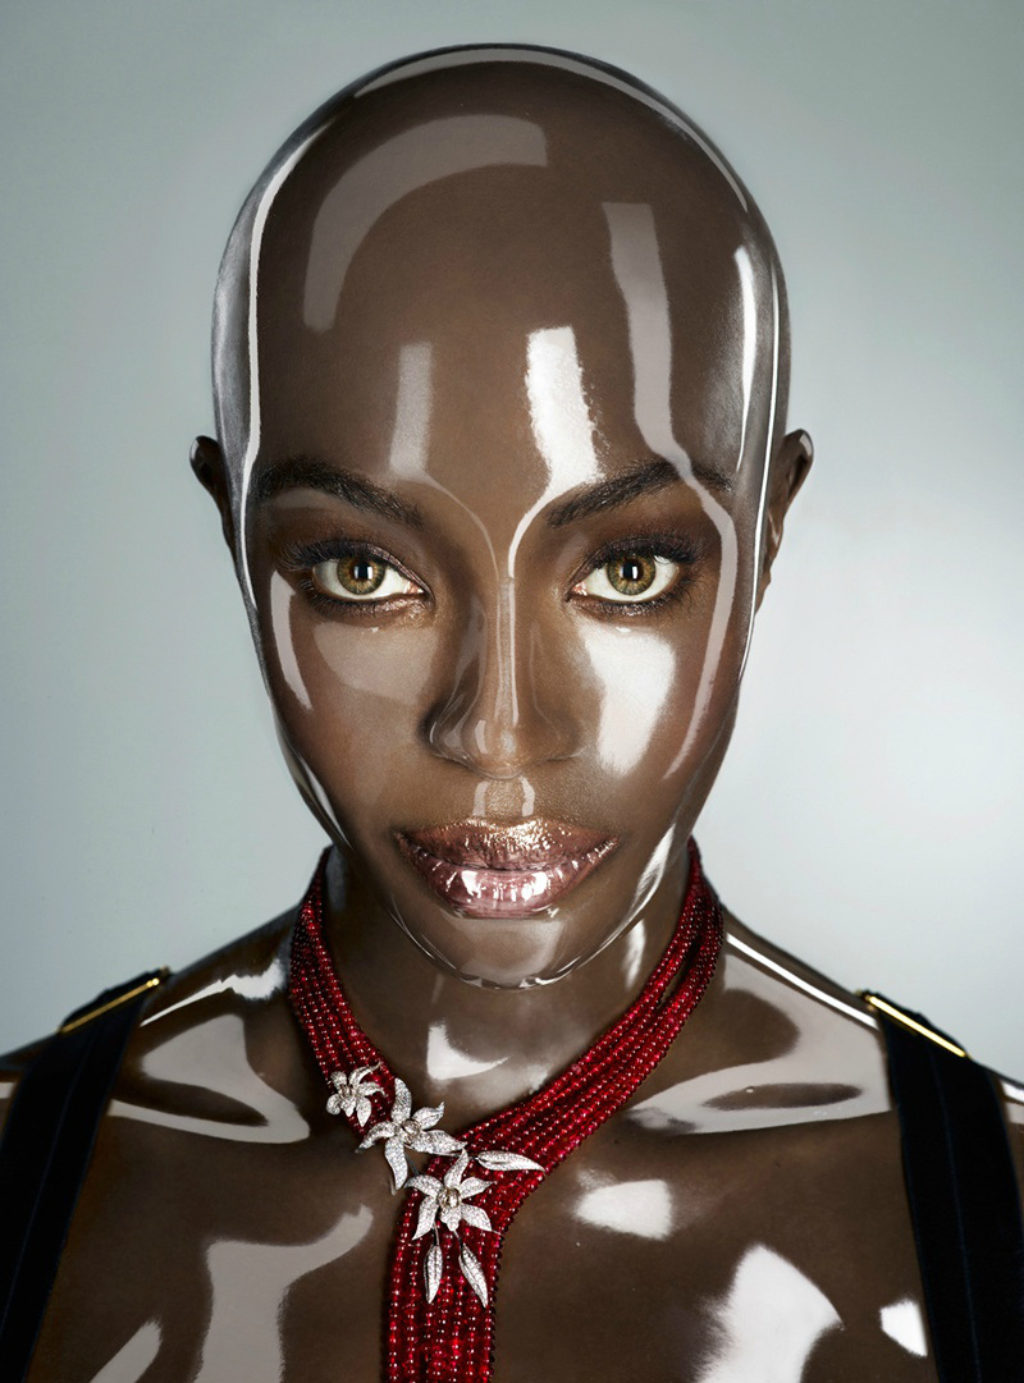 Naomi Campbell Bald in a Clear Plastic Mold